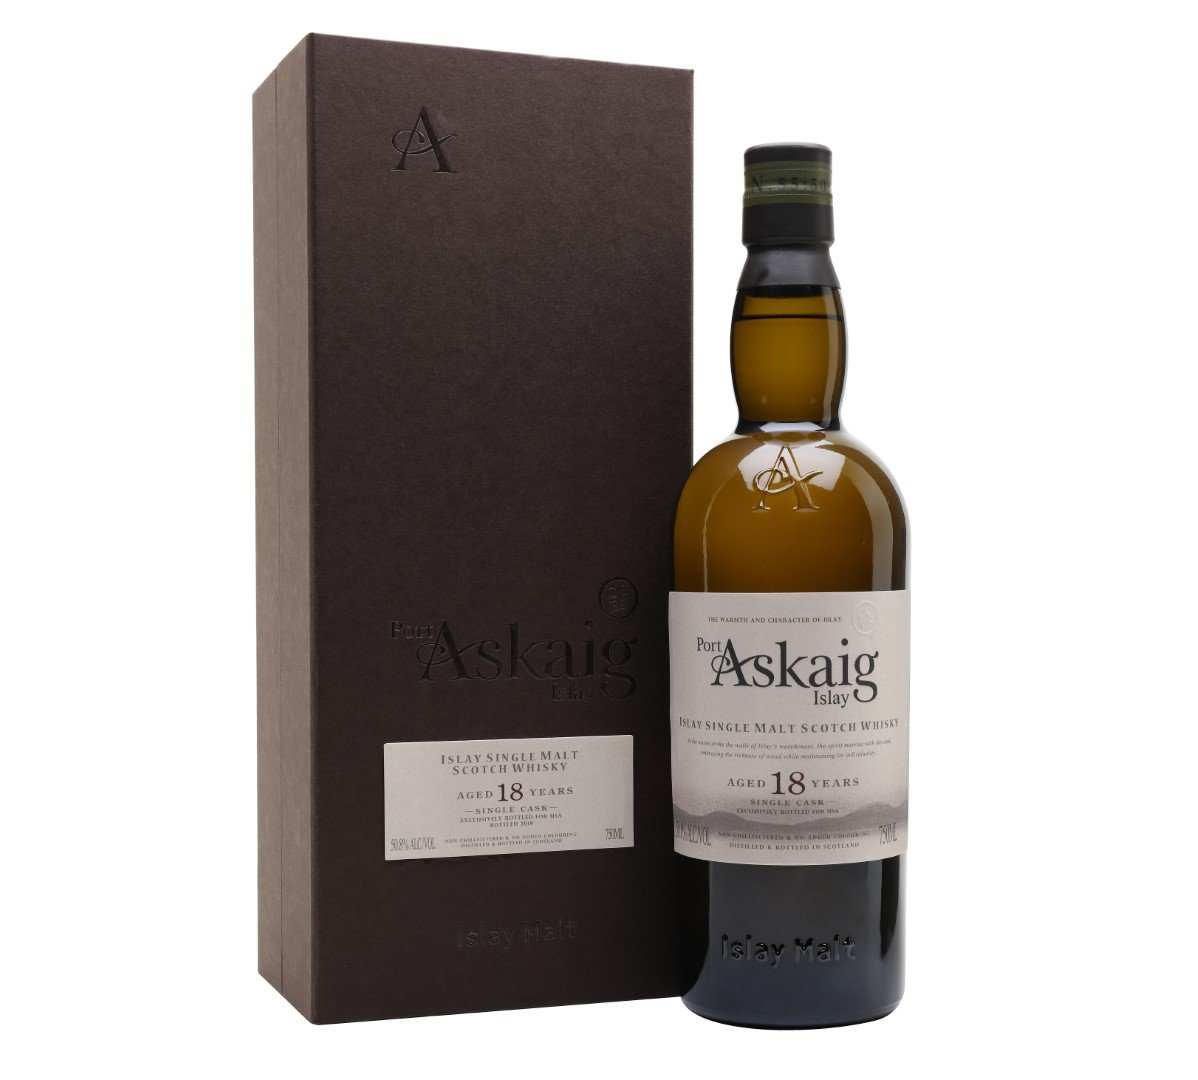 Port Askaig 18 Years Old